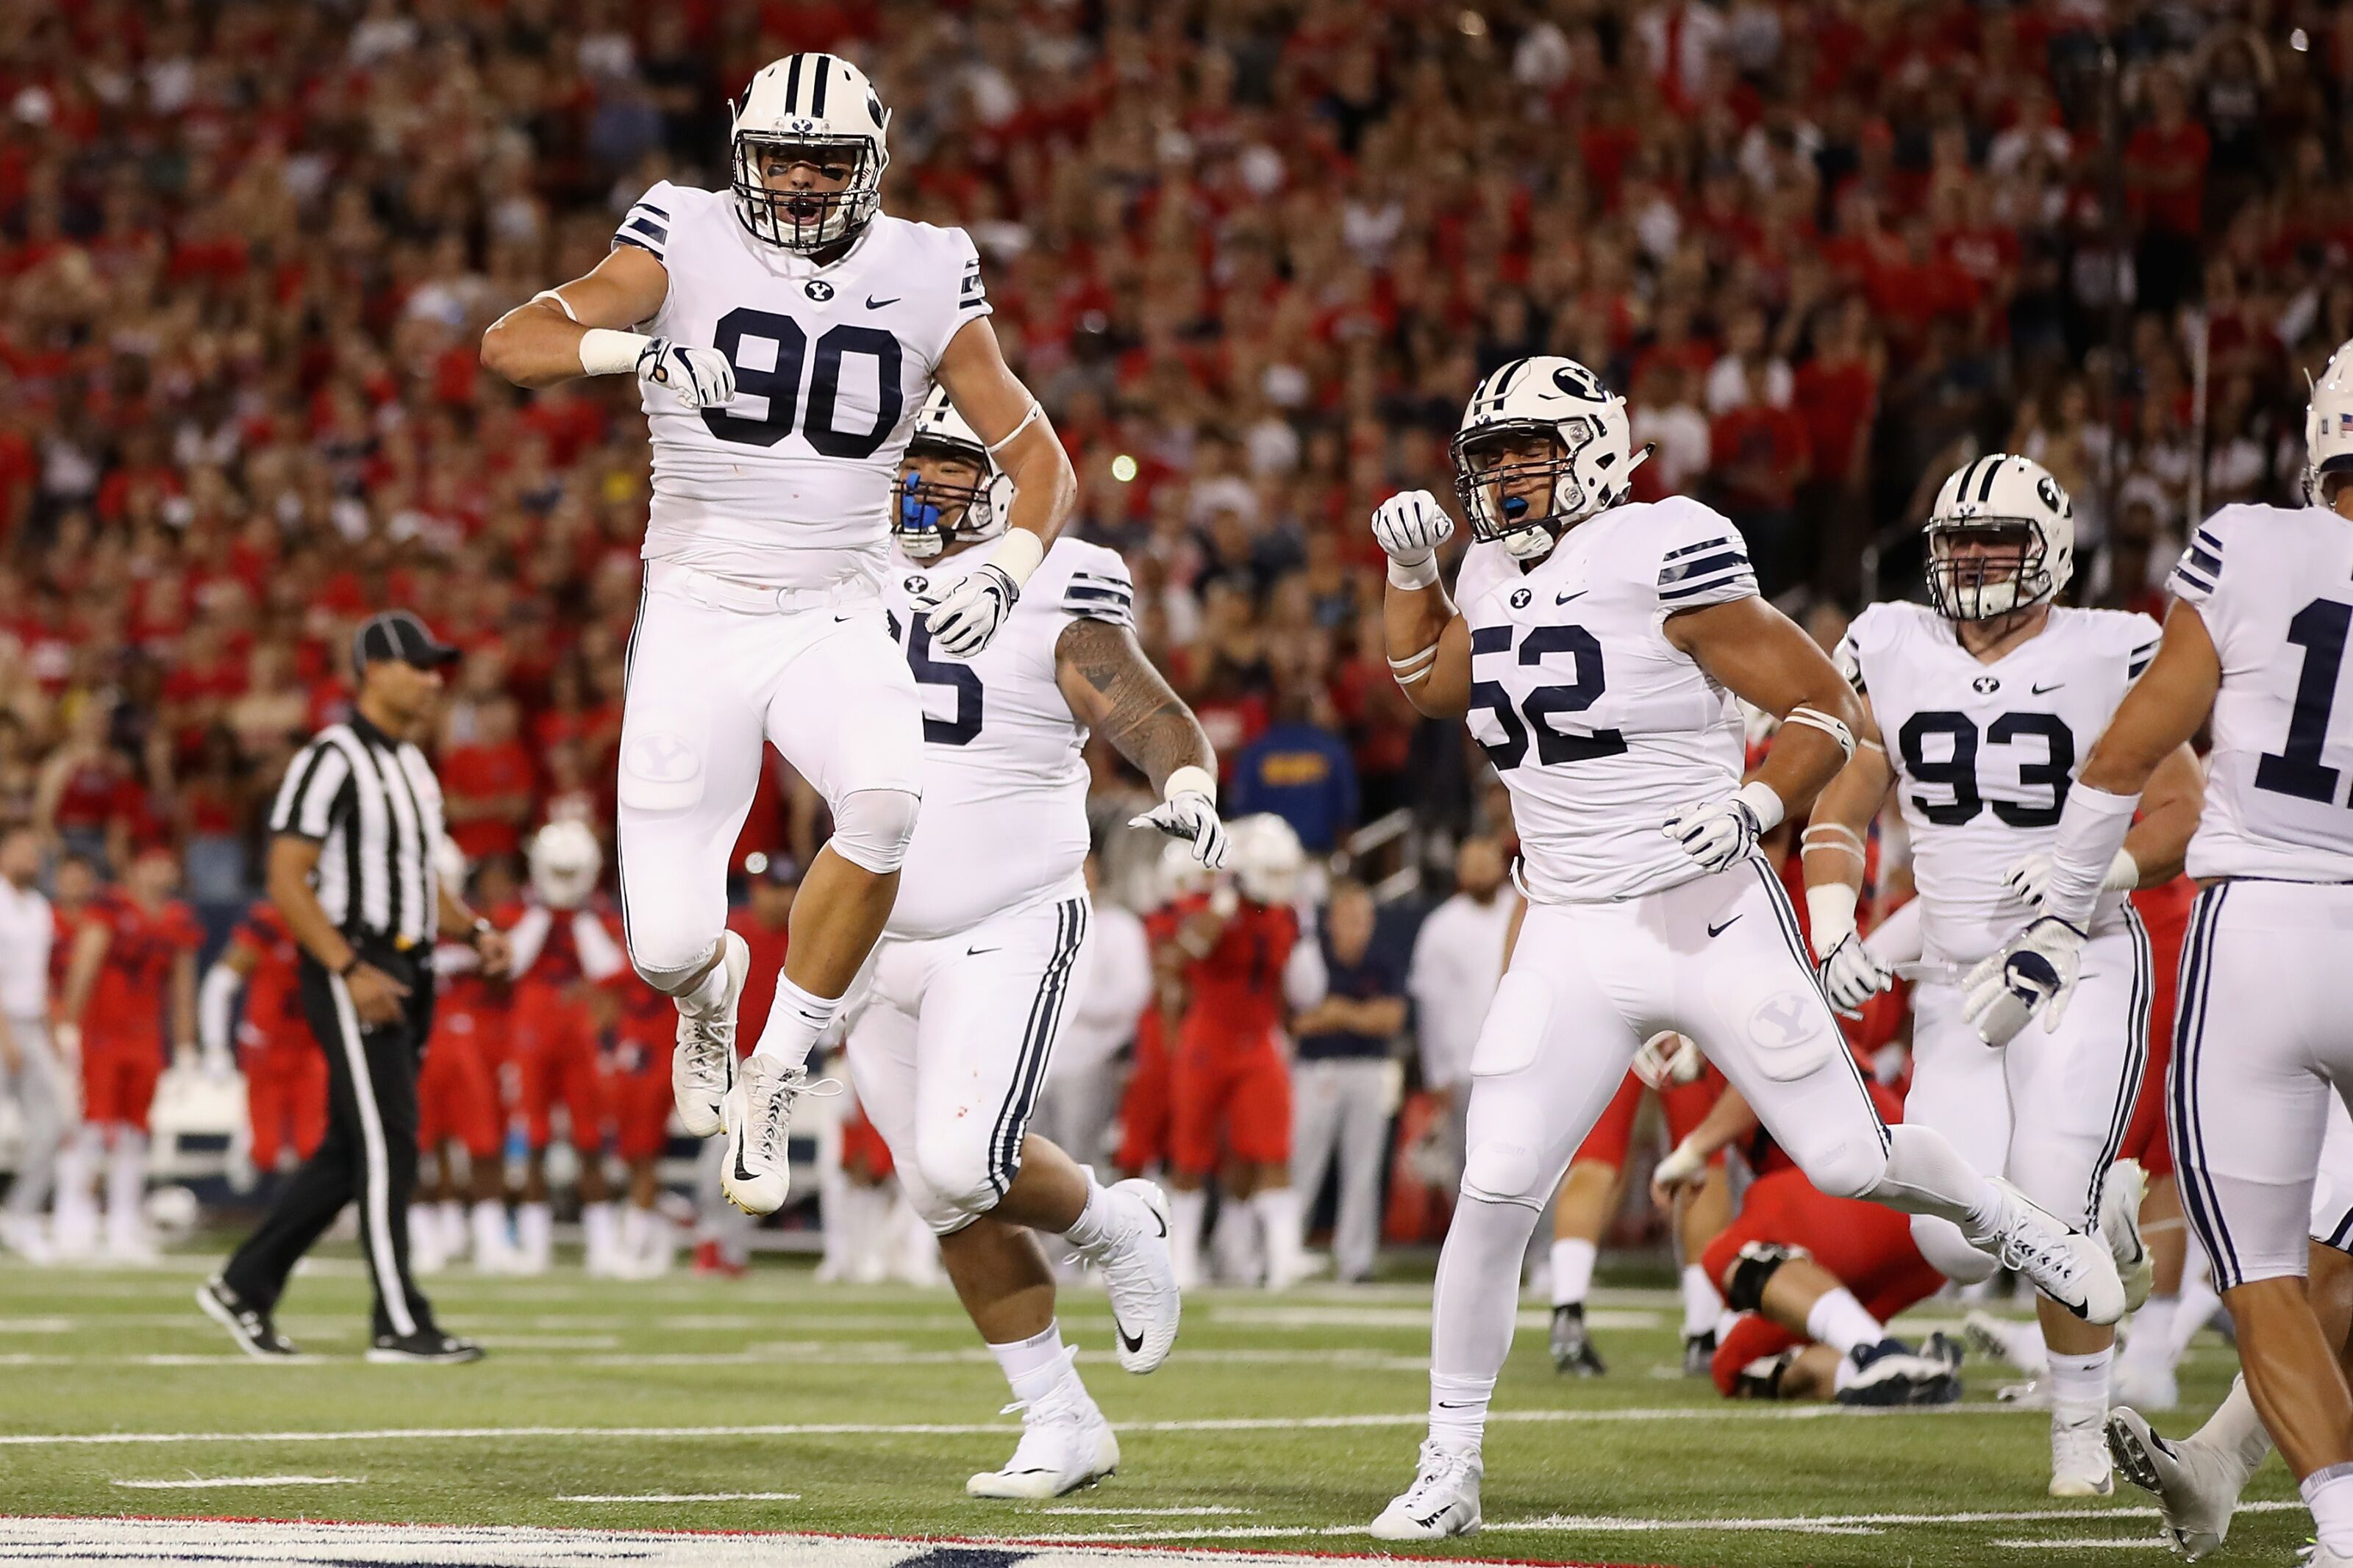 Byu Football Cougars Getting Some Respect After Arizona Win